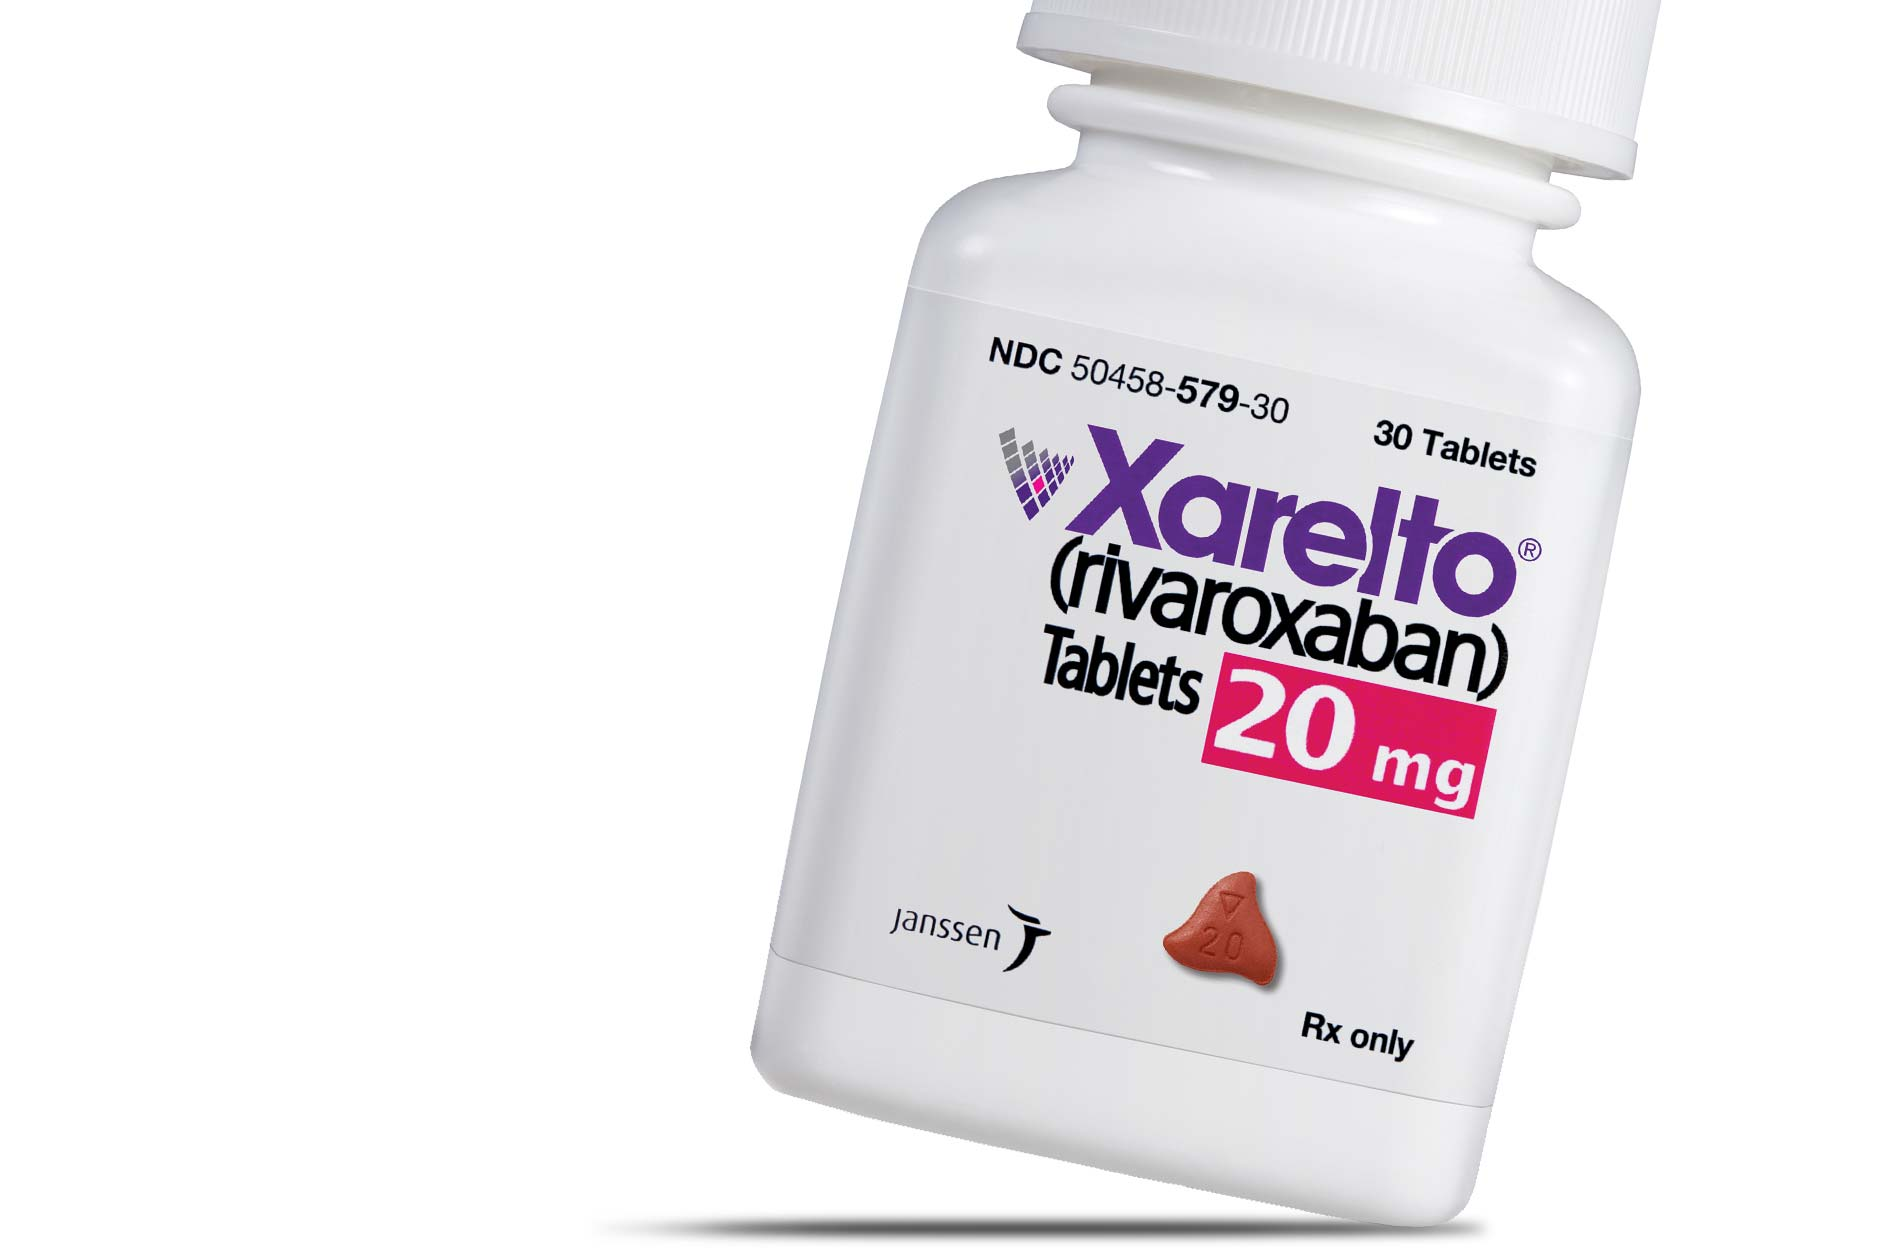 A Xarelto bottle